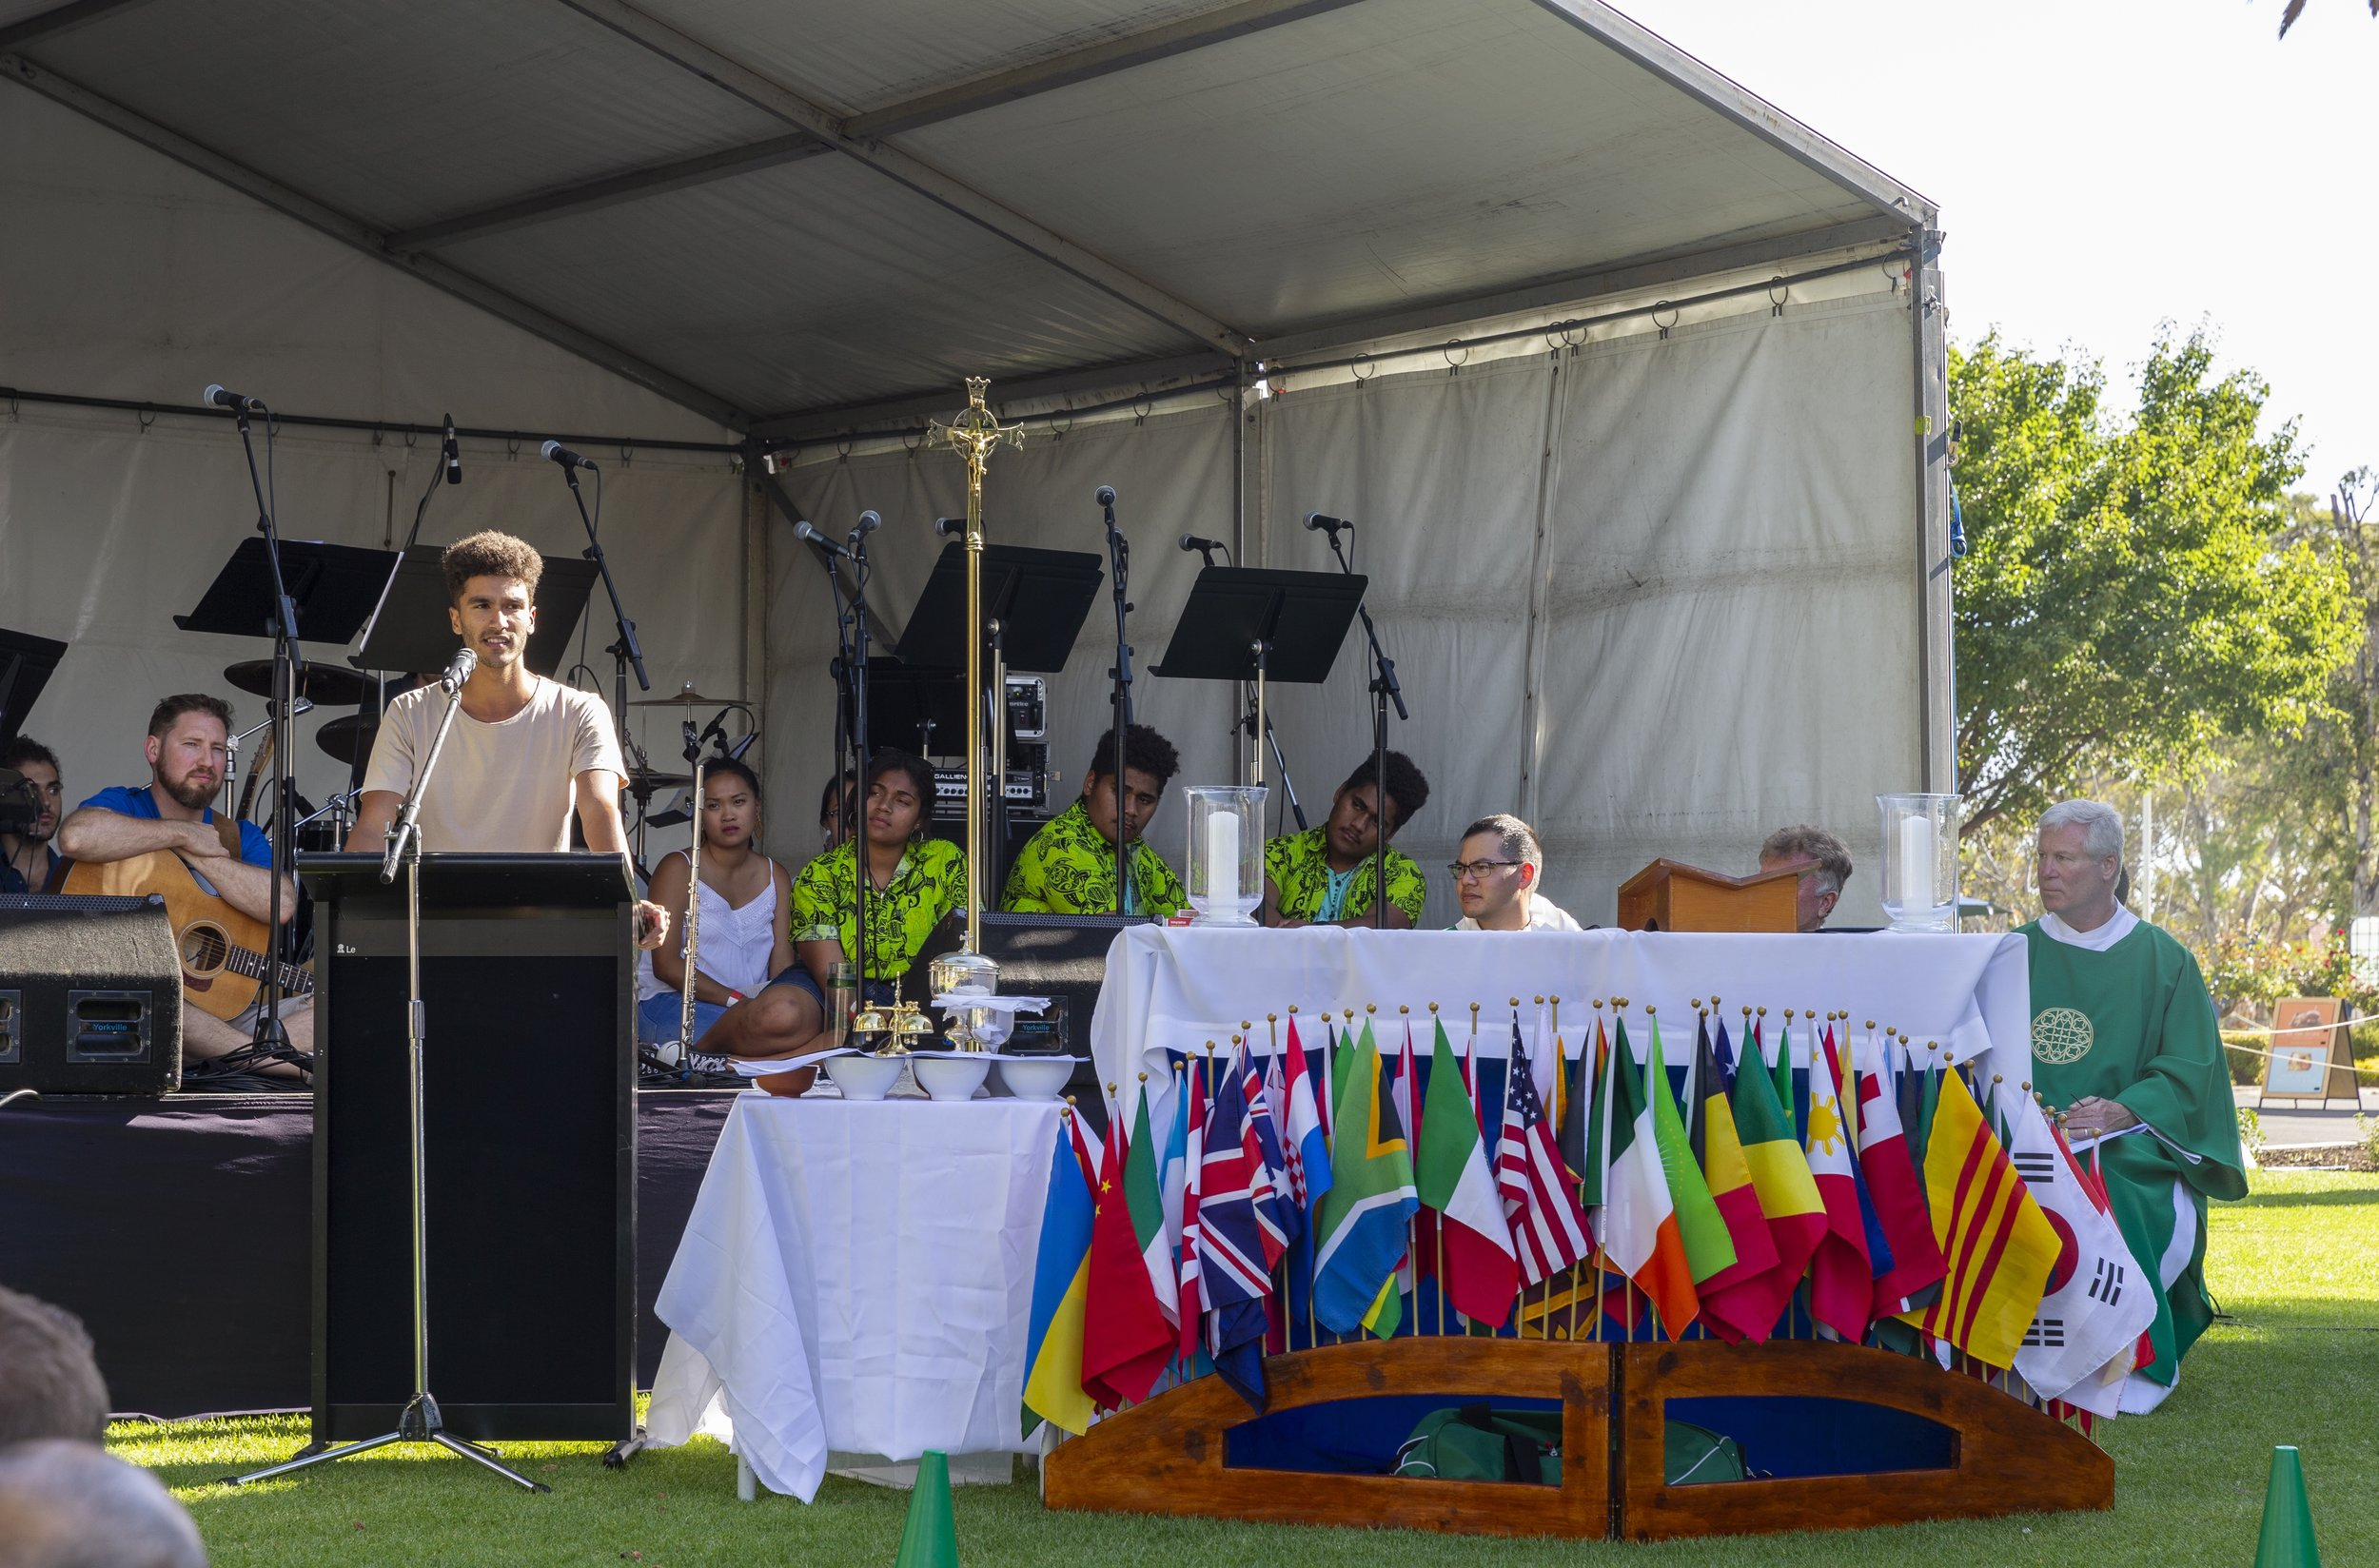 Sebastian Duhau, Youth Auditor at the 2019 Synod of Bishops, Guest Speaker at the WYD Adelaide Mass